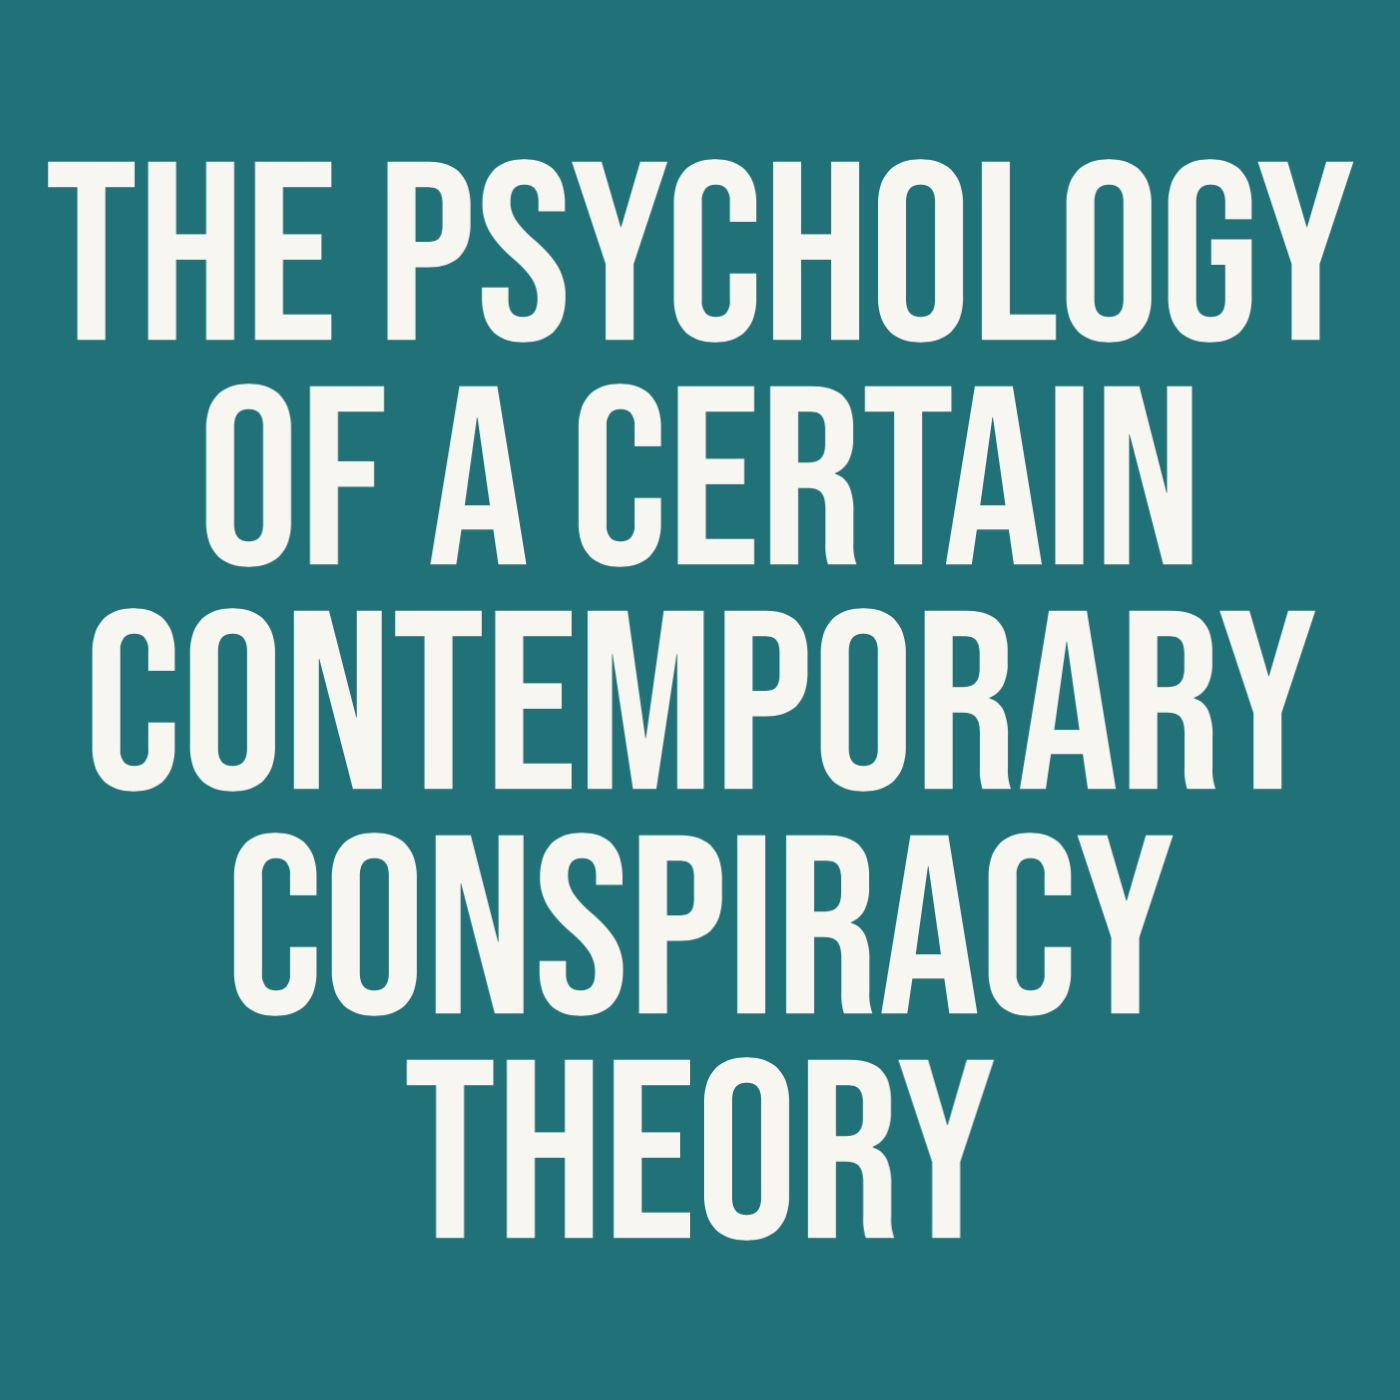 The Psychology of a Certain Contemporary Conspiracy Theory